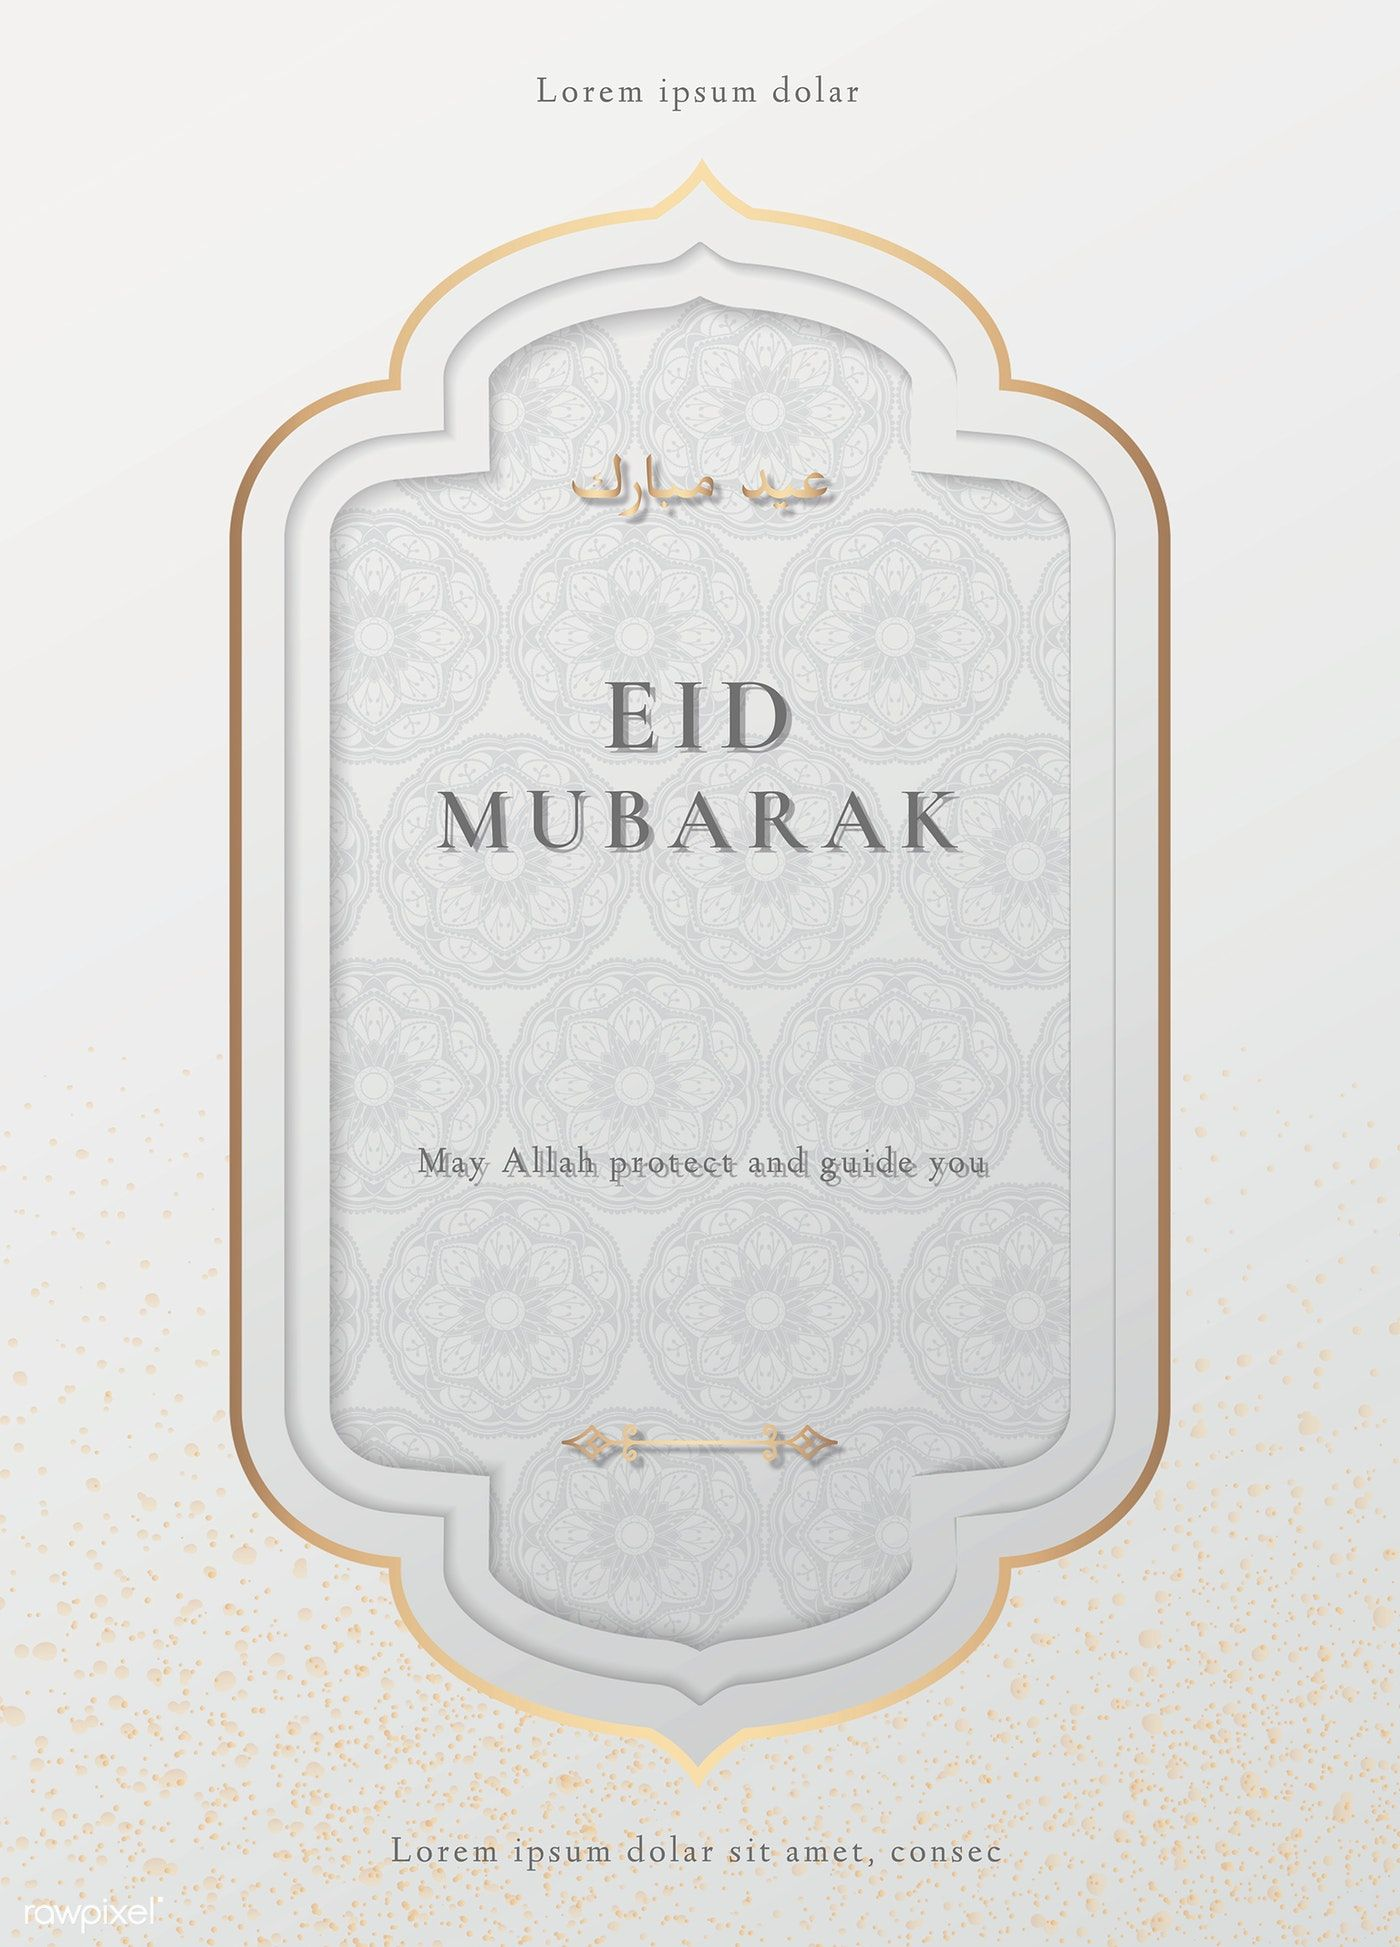 Download Premium Illustration Of Festive Eid Mubarak Greeting Card Eid Mubarak Greeting Cards Eid Mubarak Card Eid Mubarak Greetings